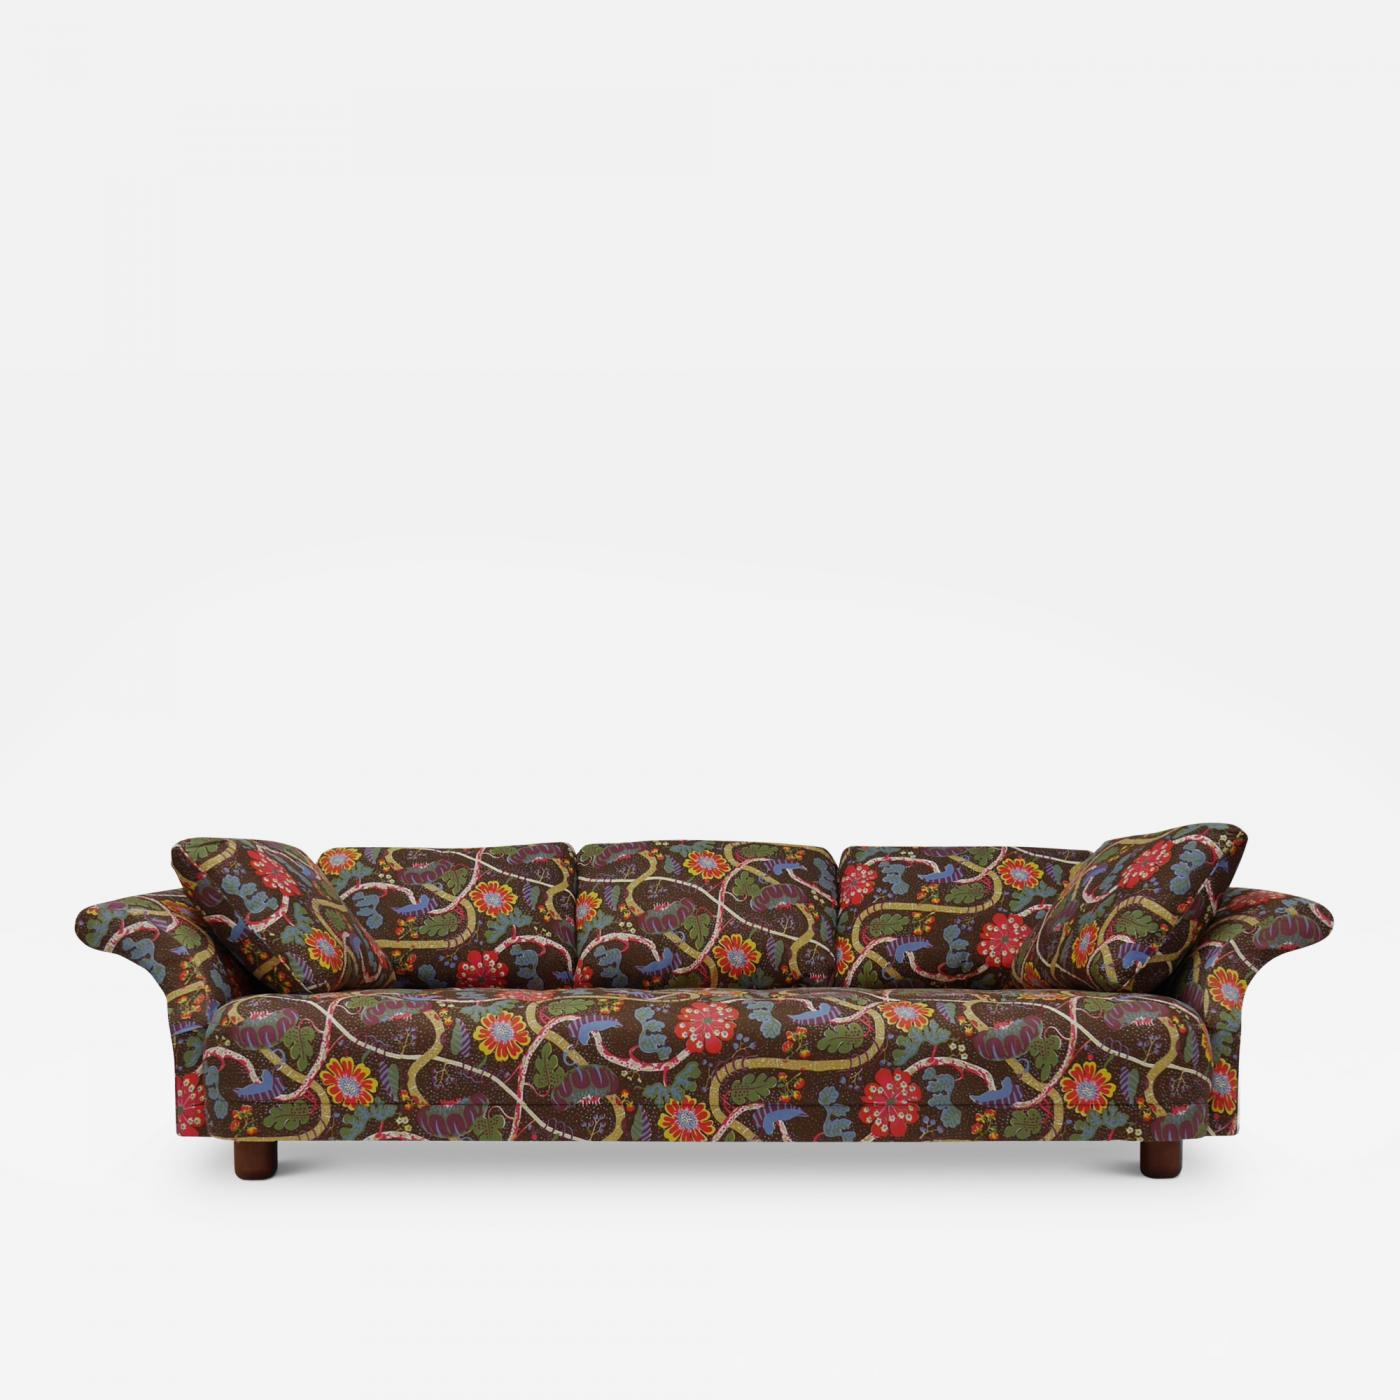 Amazing Josef Frank Liljevalch Sofa And Lounge Chair By Nice Look